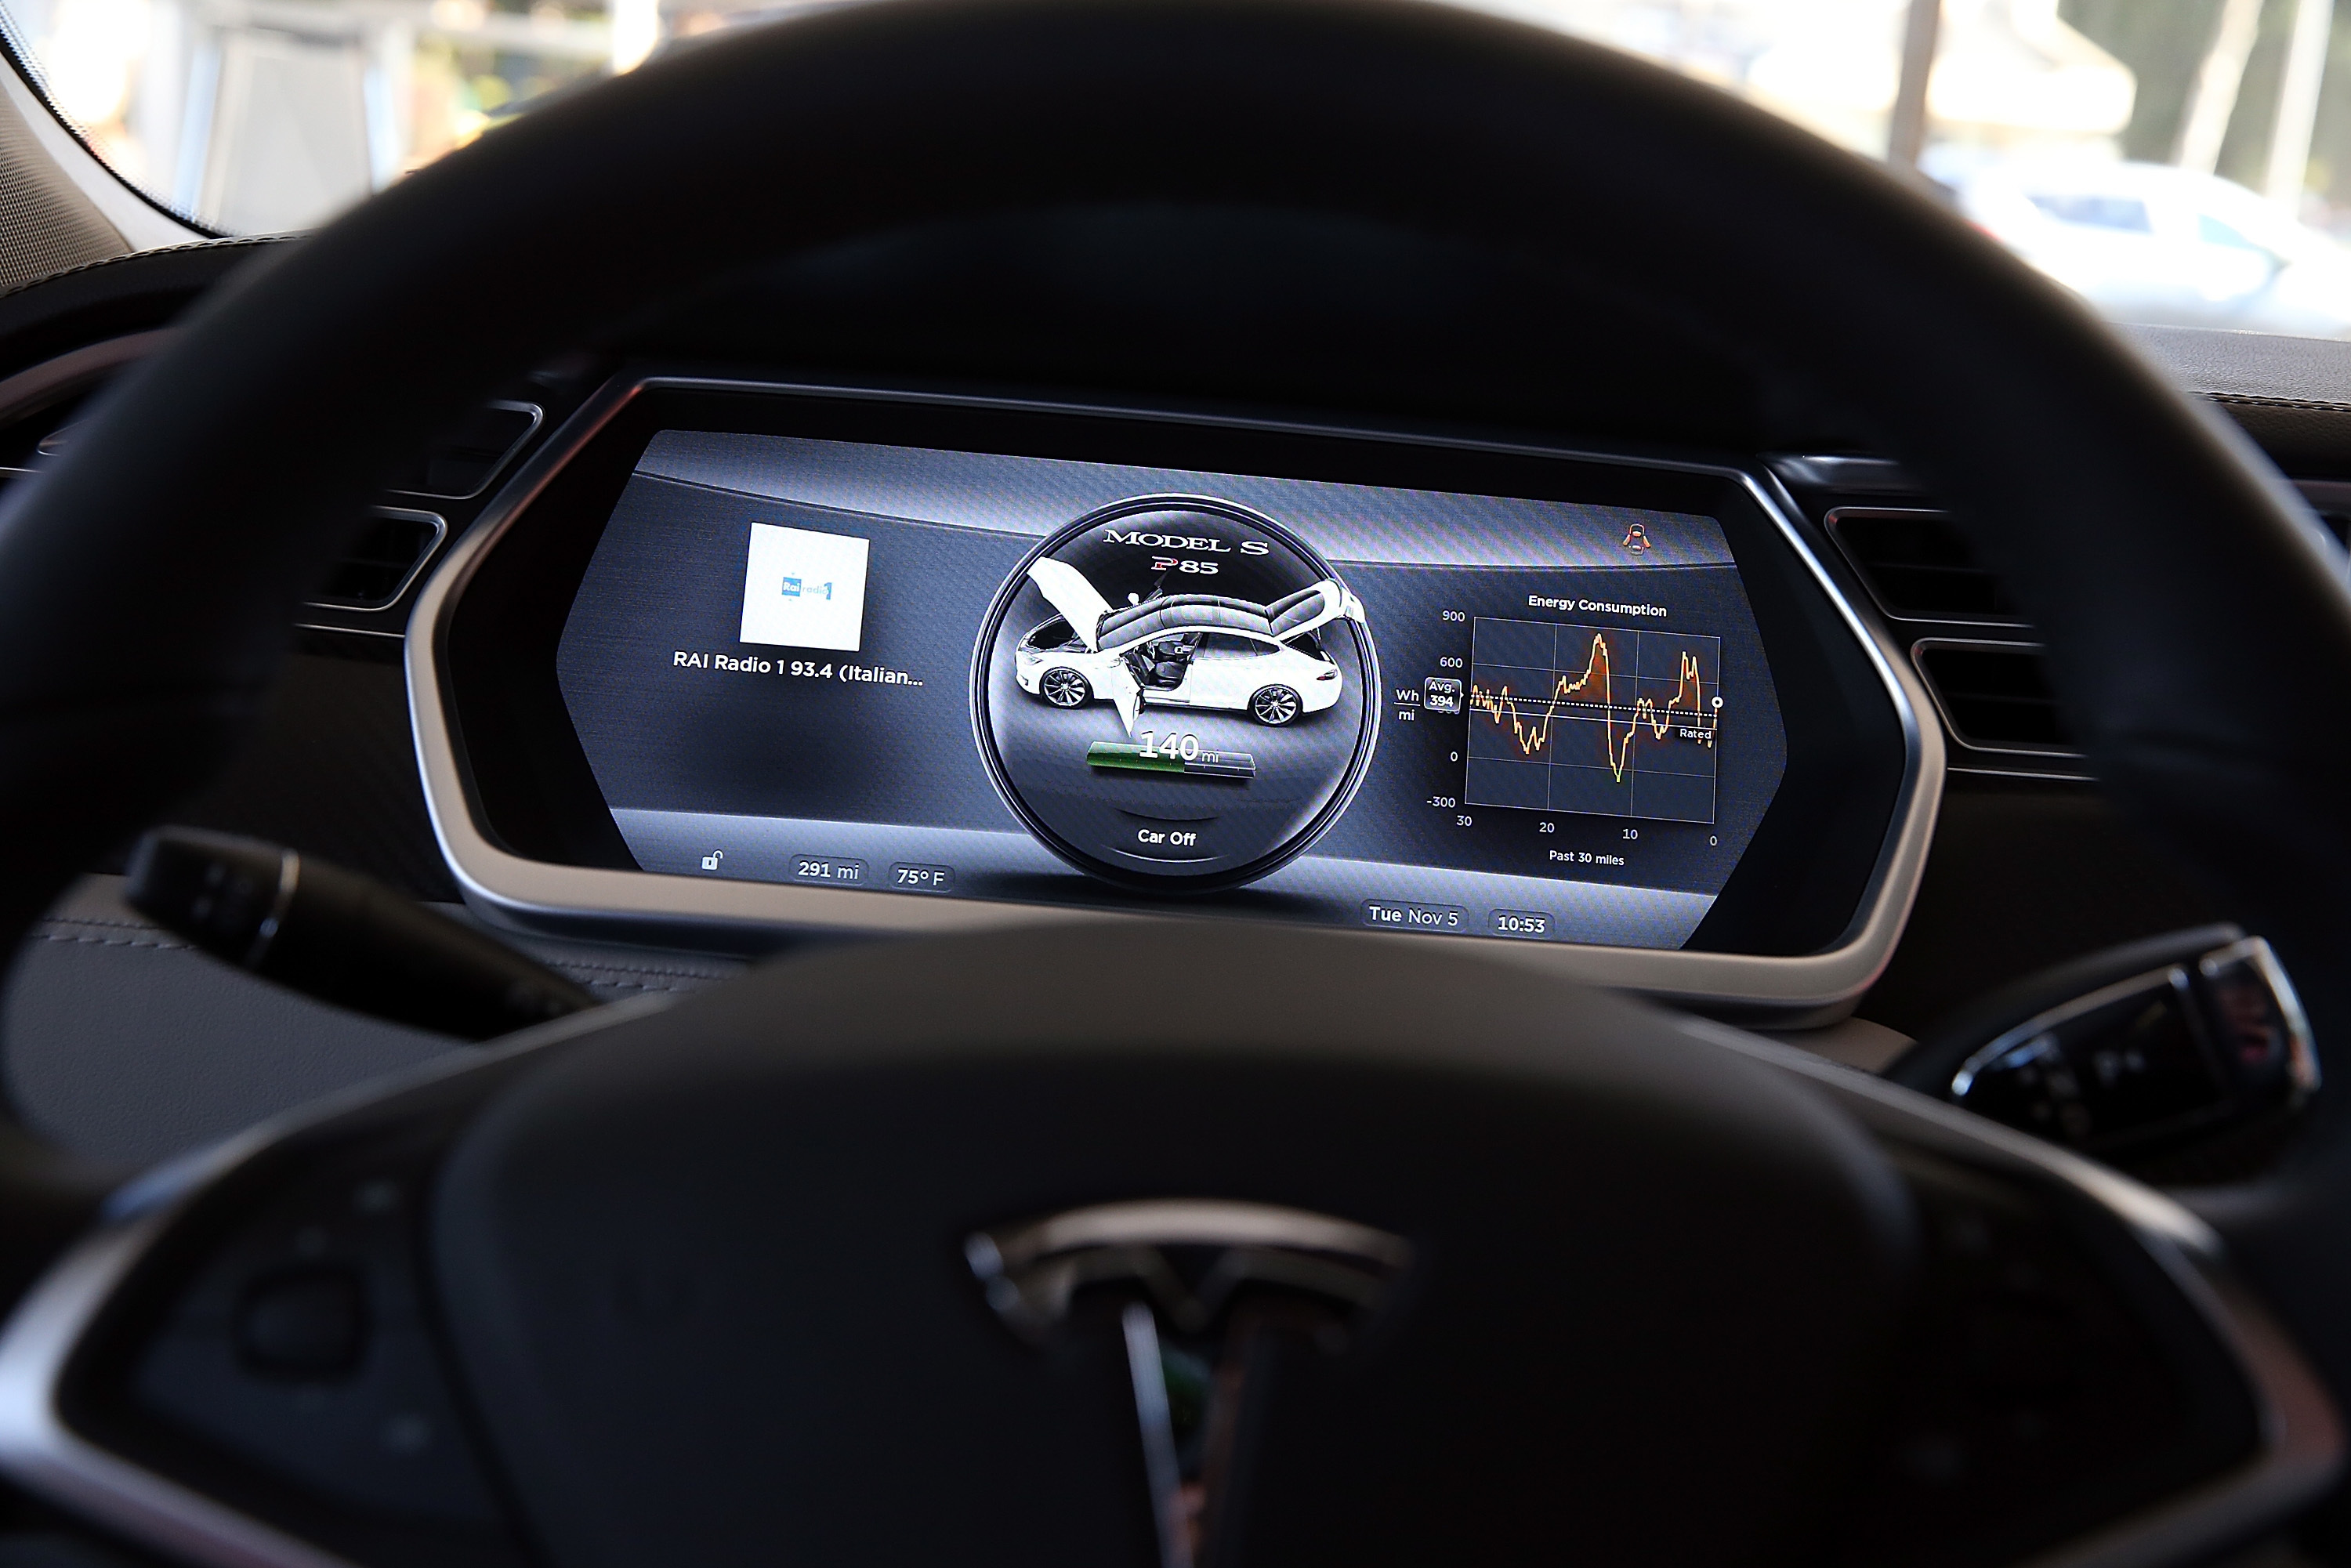 Elon Musk Says The Tesla Model 3 S Dashboard Is Just Fine